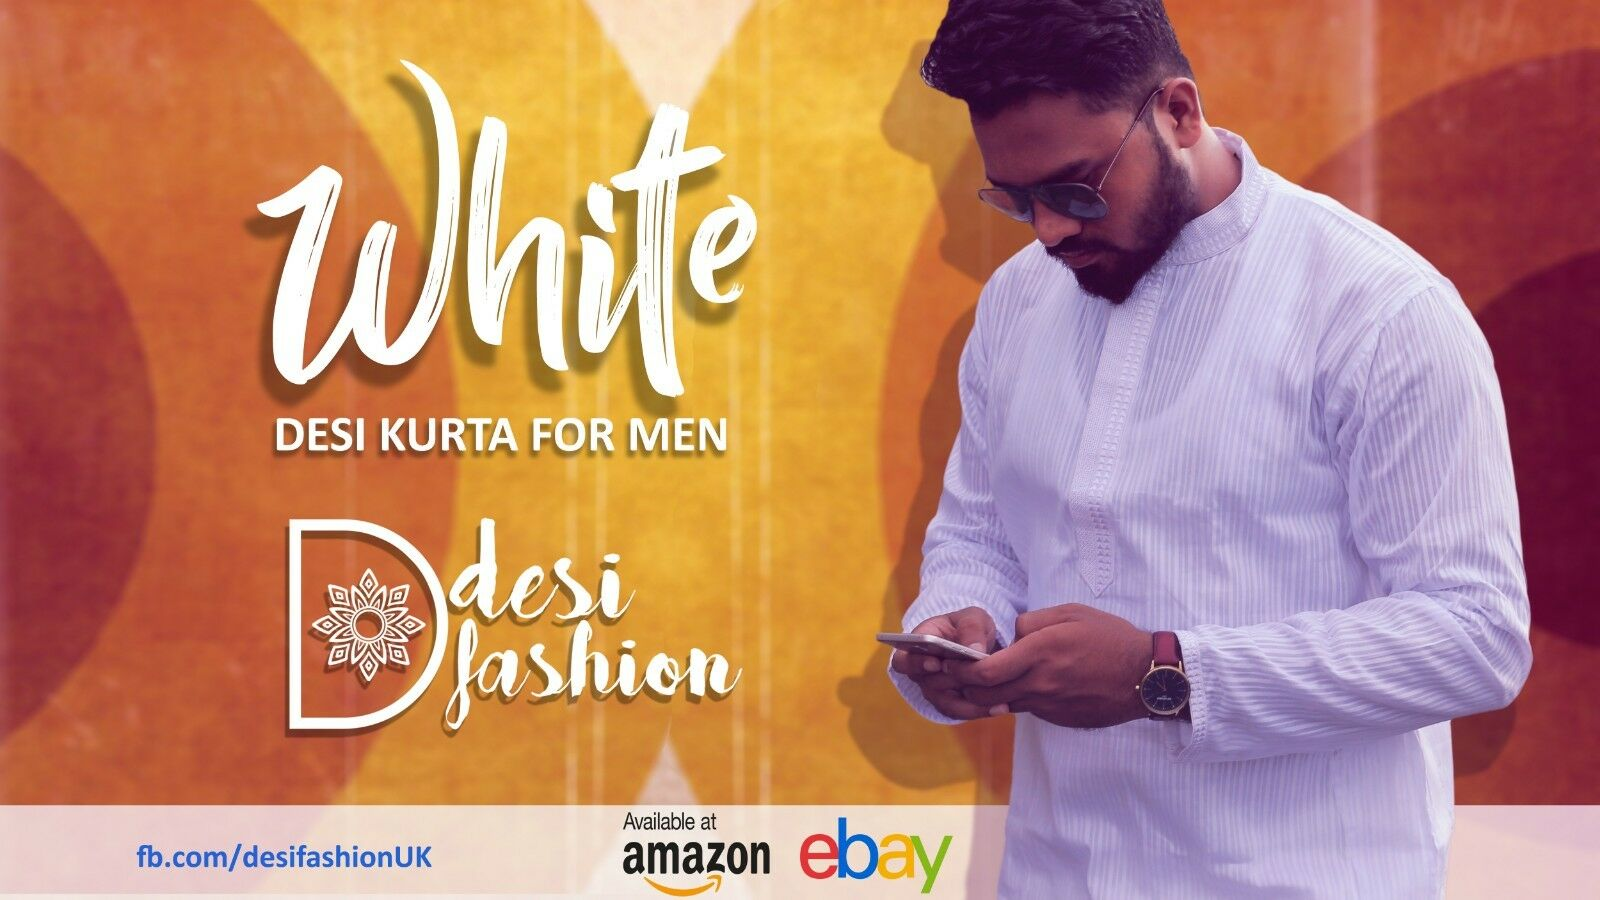 White Kurta for Men - Cotton & Stylish fit for Weddings, Parties or Festival